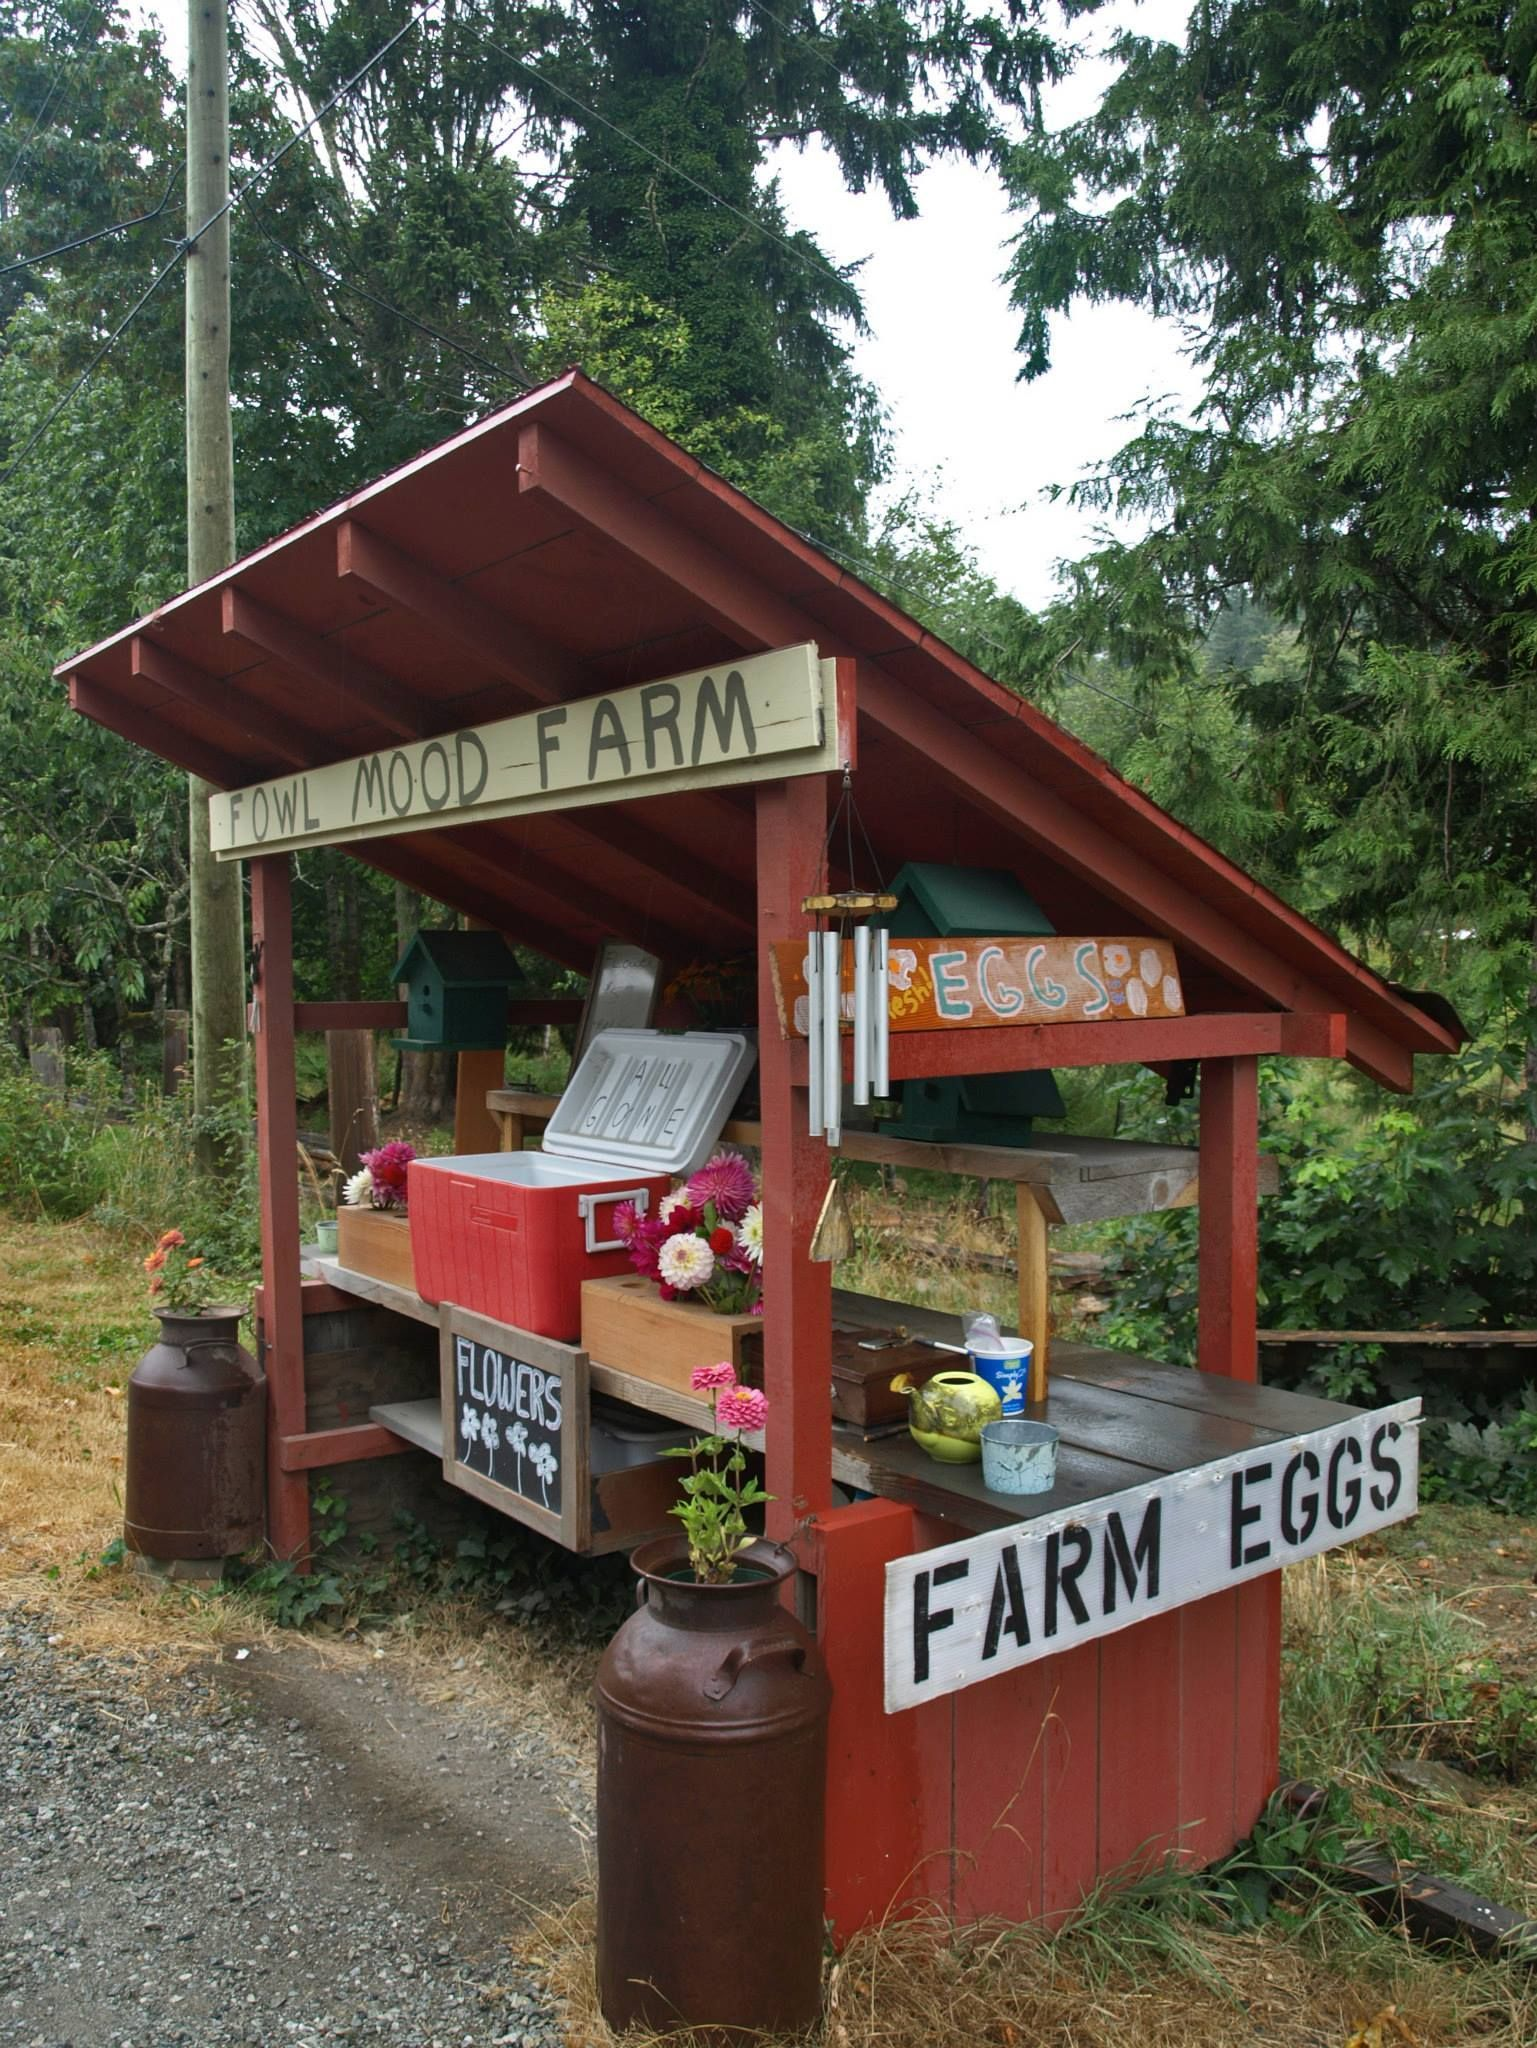 Vegetable Stand Designs : Farm stand ideas farmer s market farm stand market stands